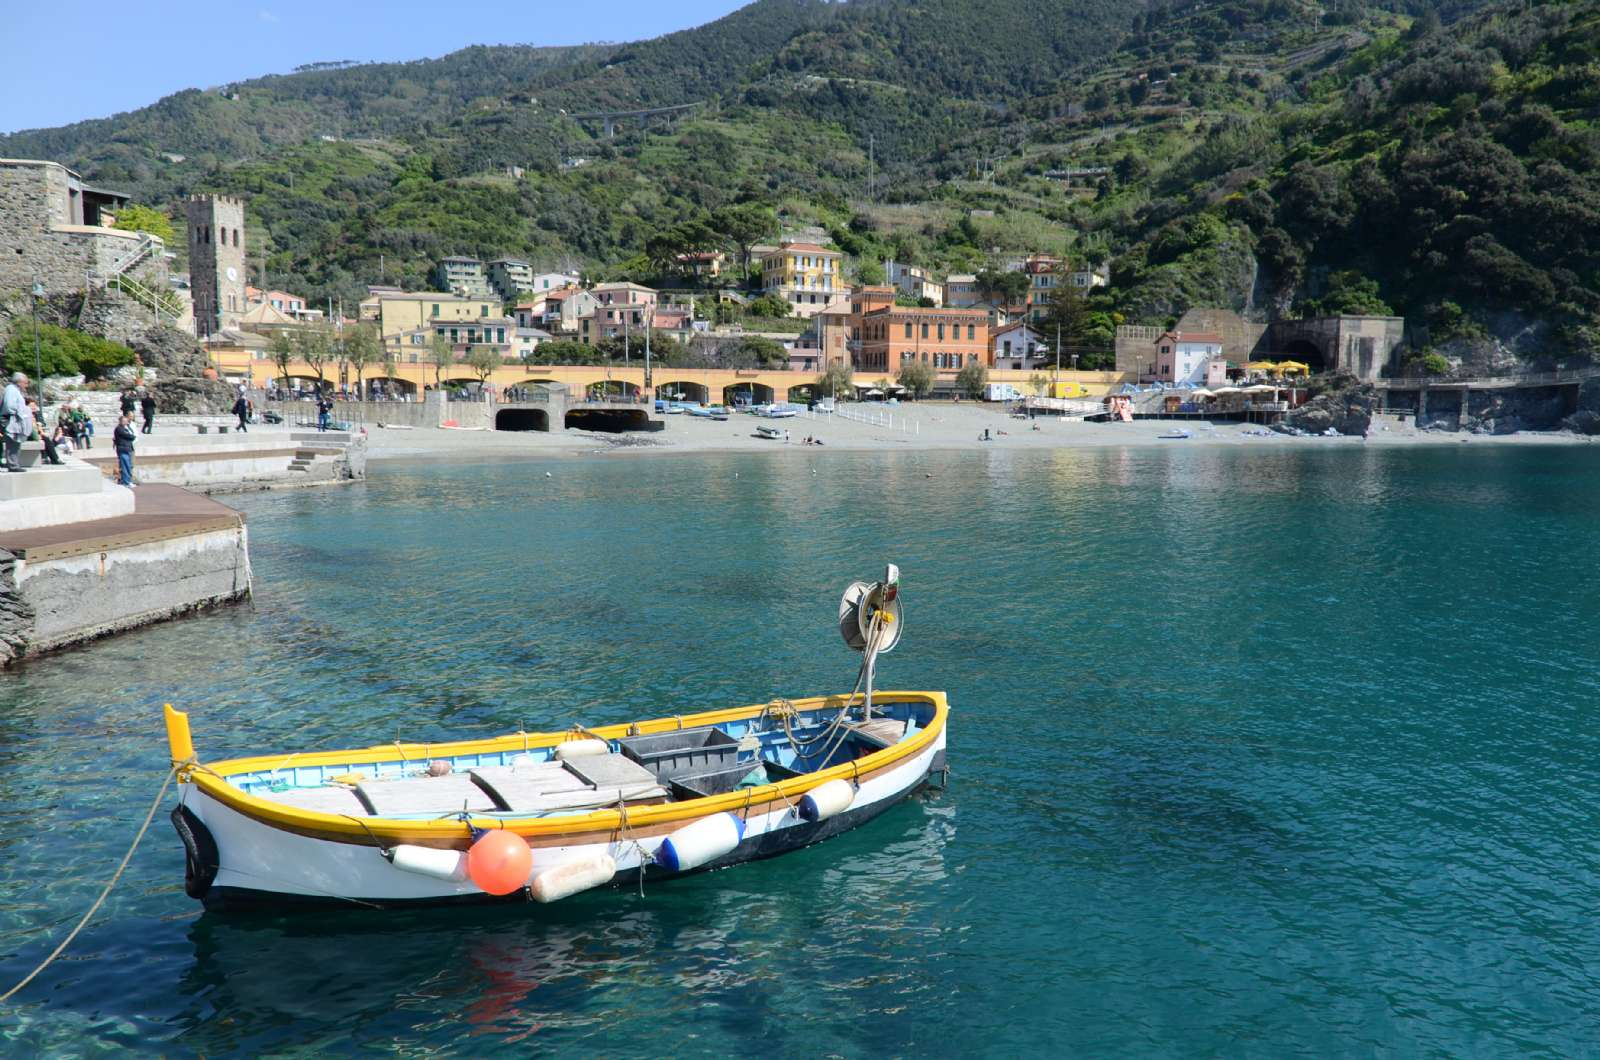 Monterosso gamle bydel